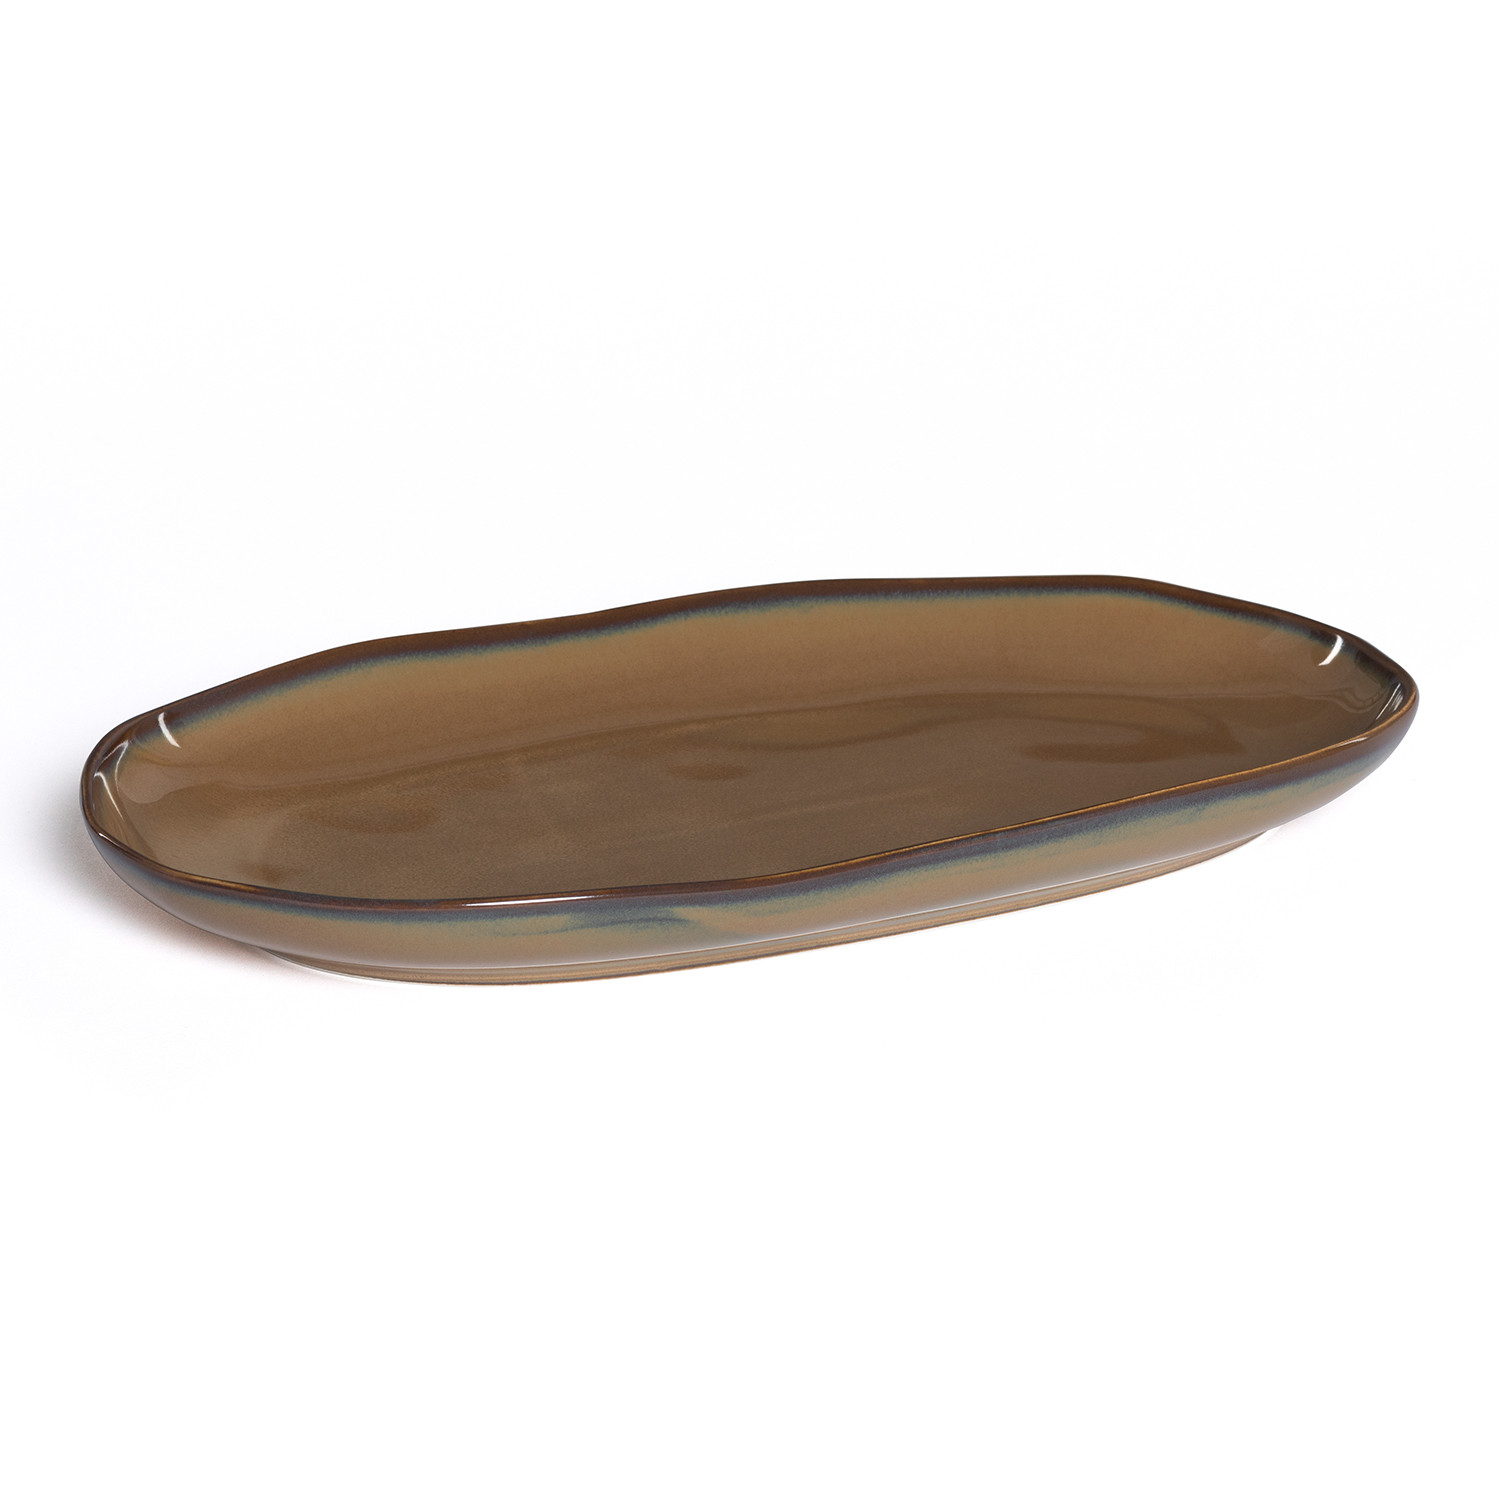 Pack of 4 Biöh Trays, gallery image 1